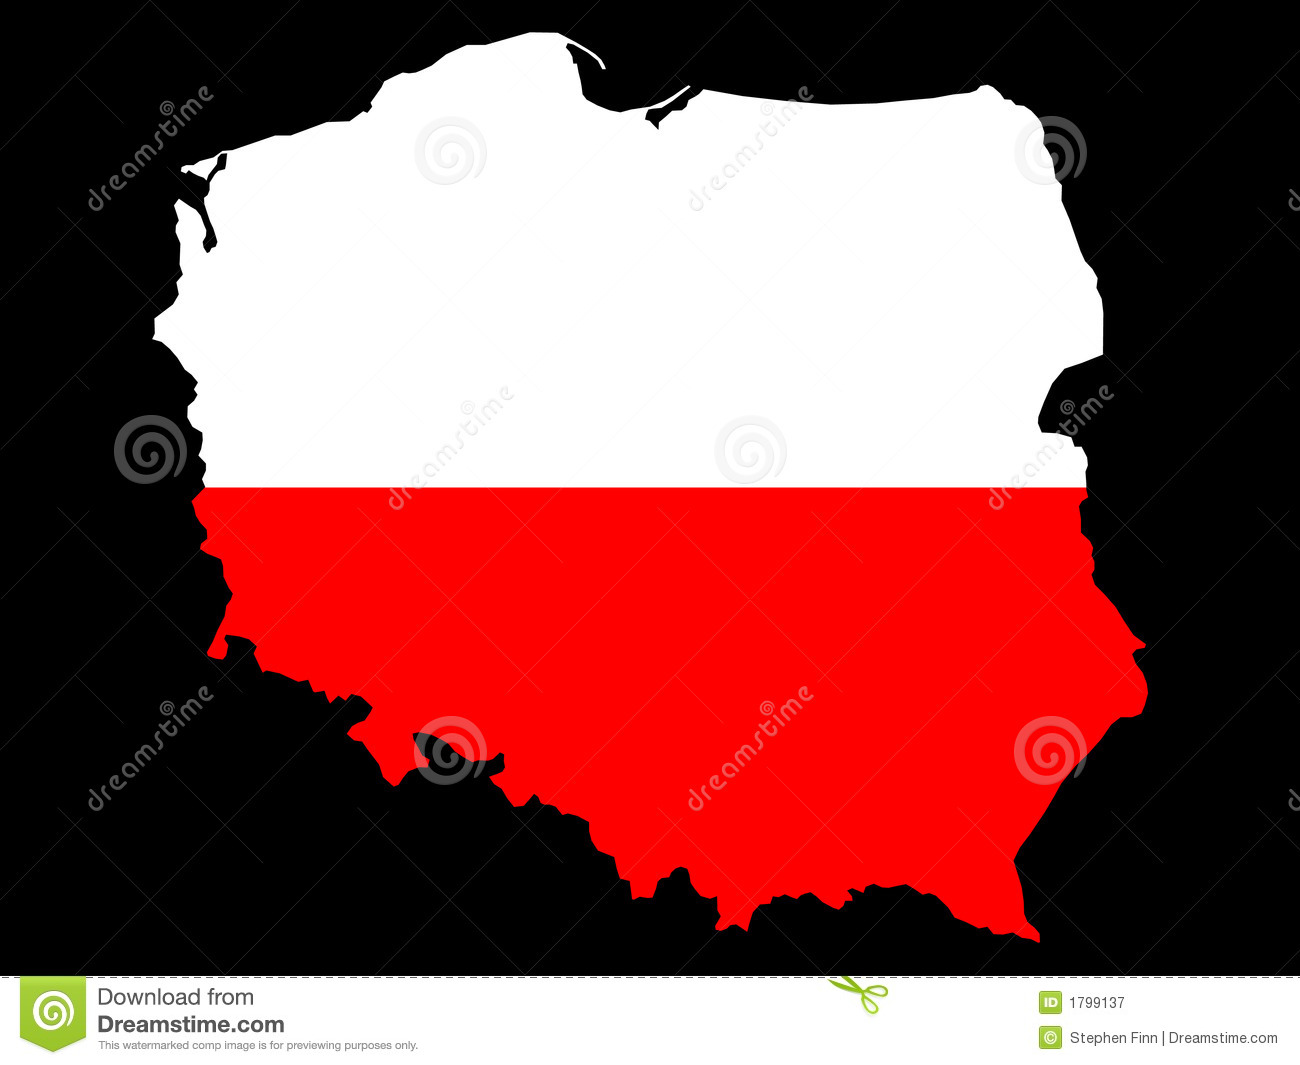 Map Of Poland And Polish Flag Stock Vector - Illustration of atlas ...